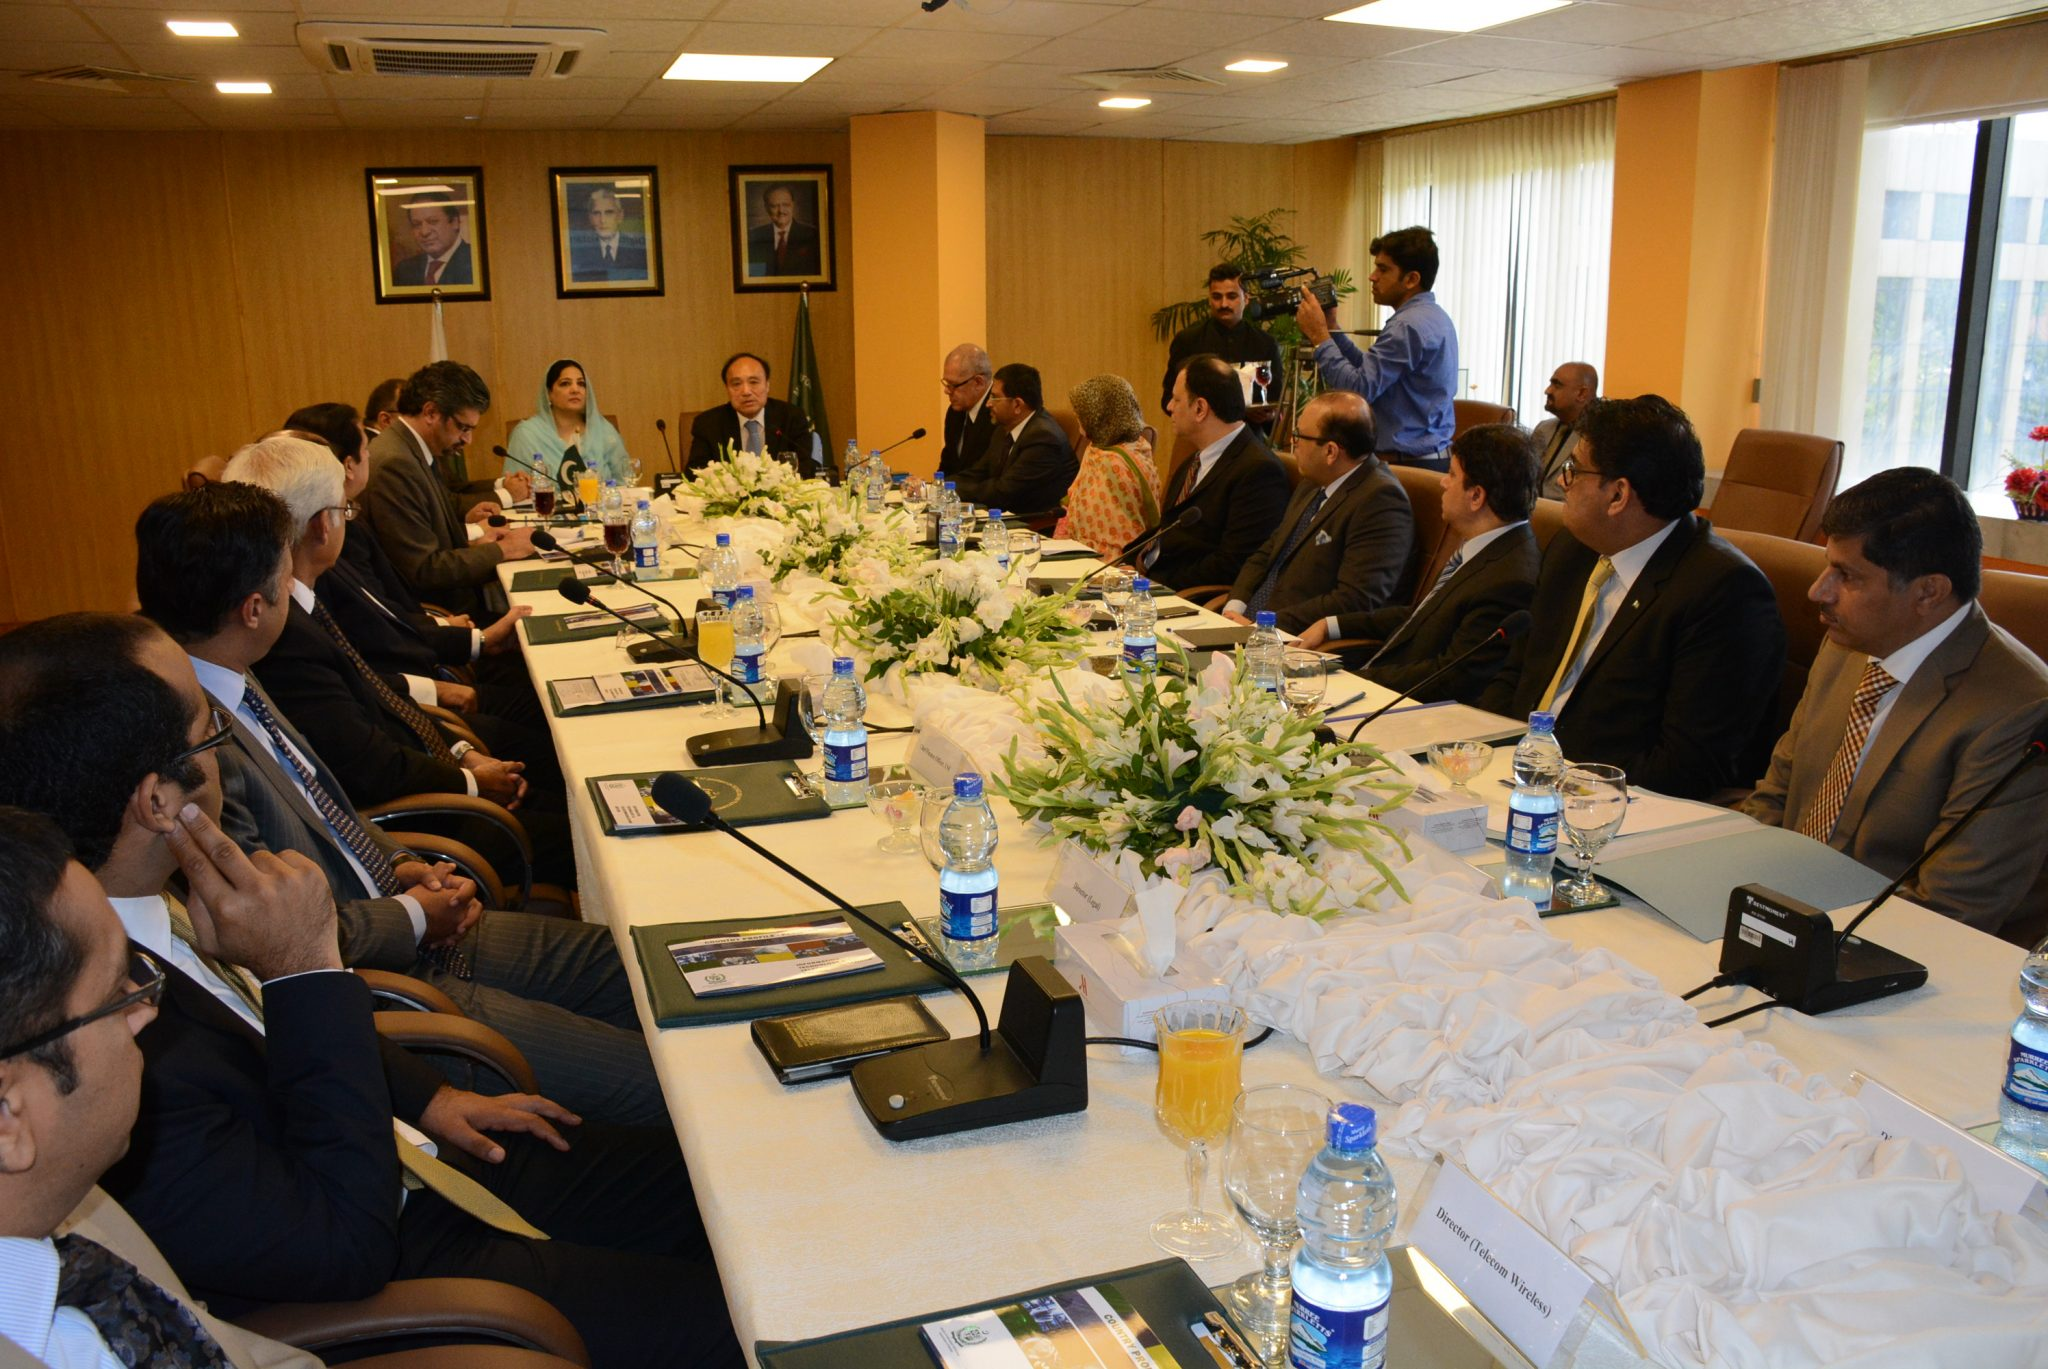 Minister of State for IT Mrs. Anusha Rahman with Secretary General ITU Mr. Houlin Zhao chairing briefing session at Moitt today here in Islamabad dated 18th July, 2016